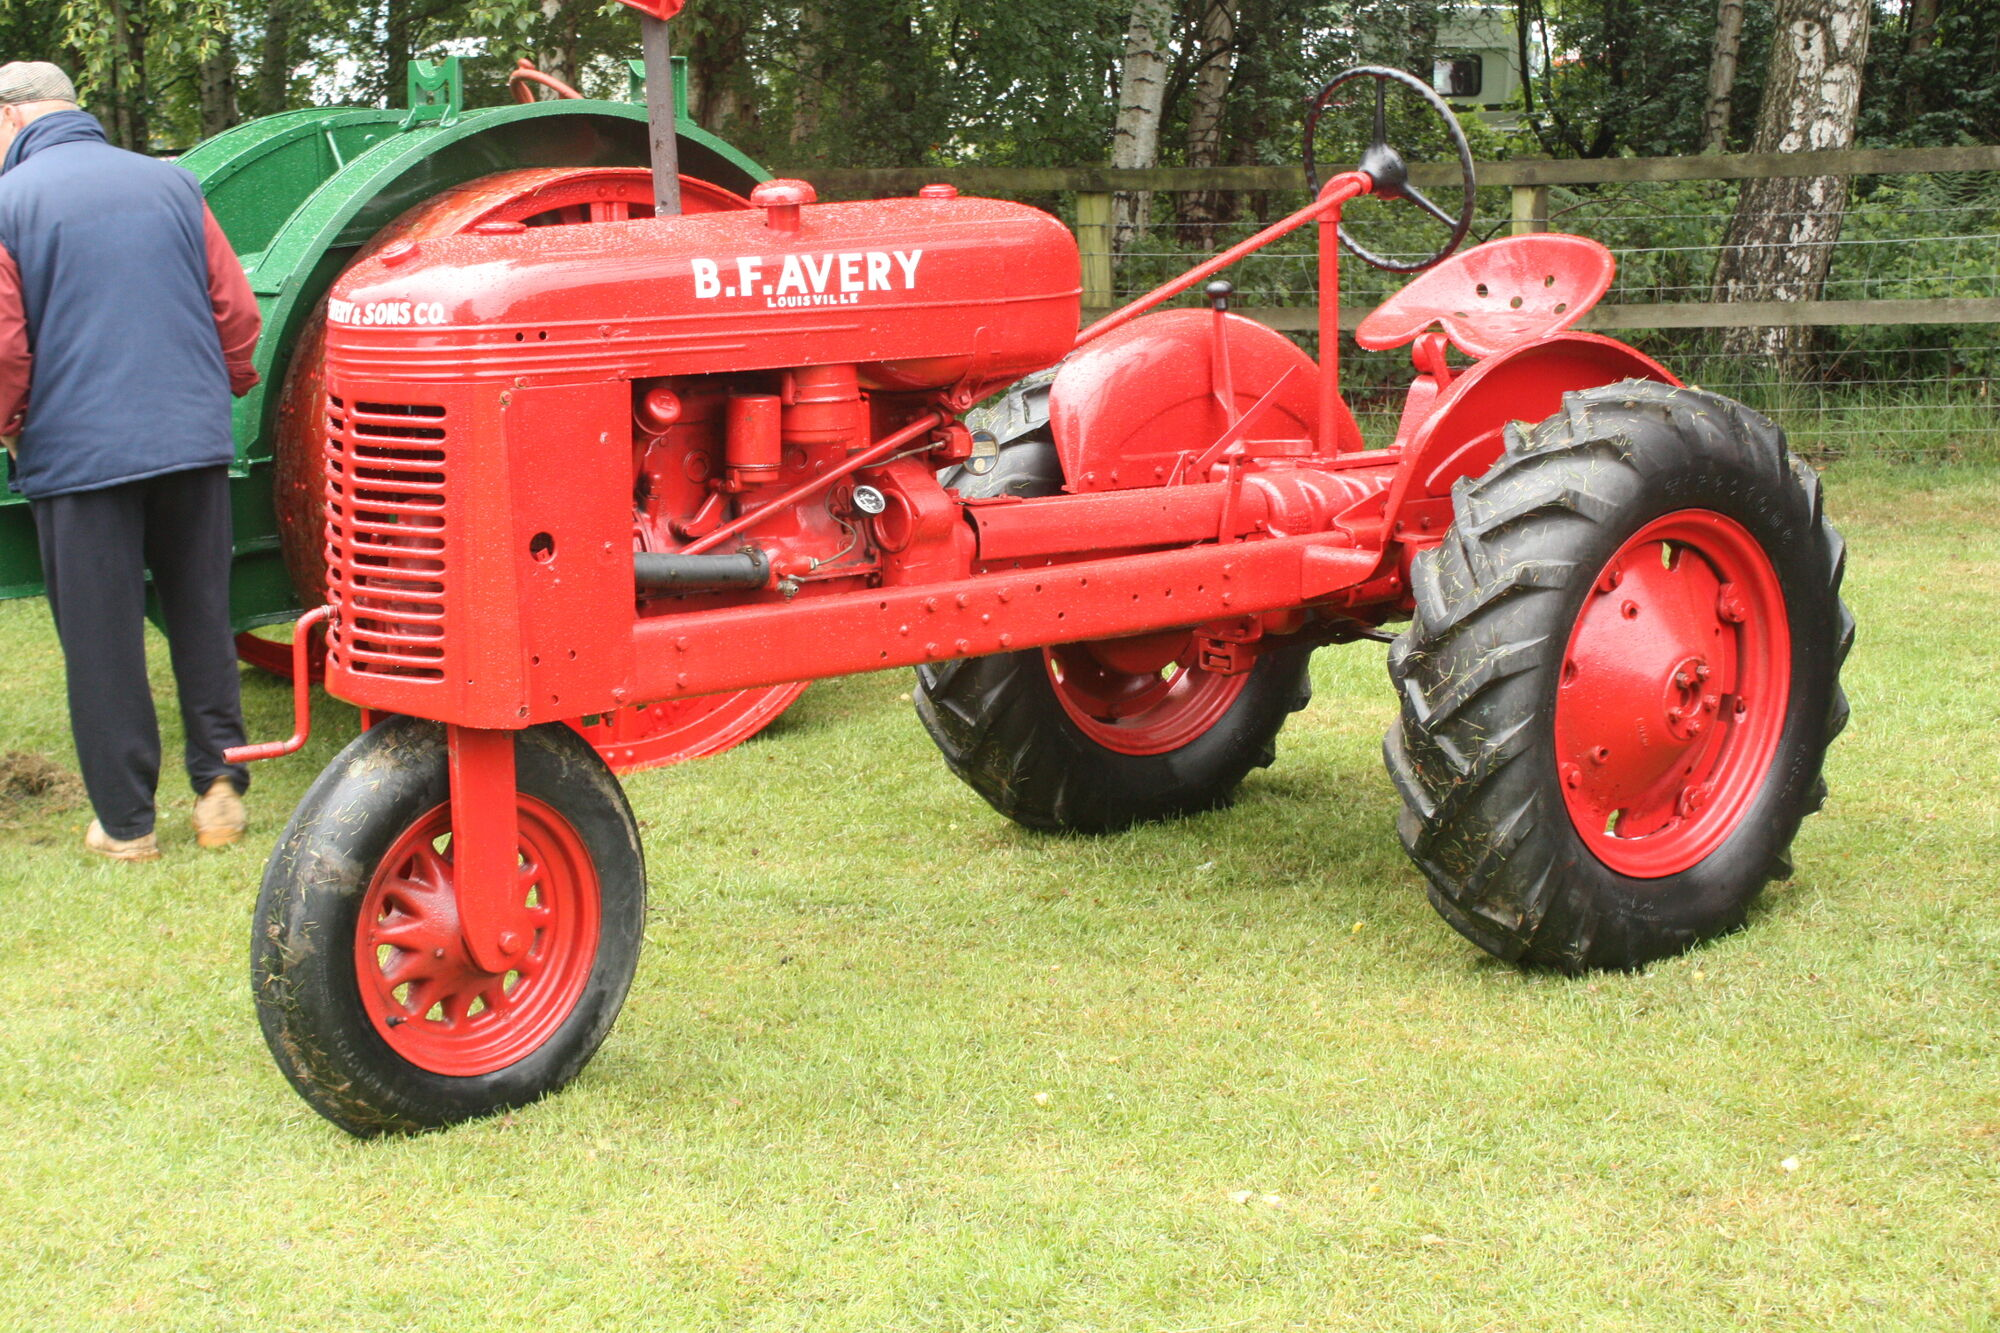 bf avery tractor